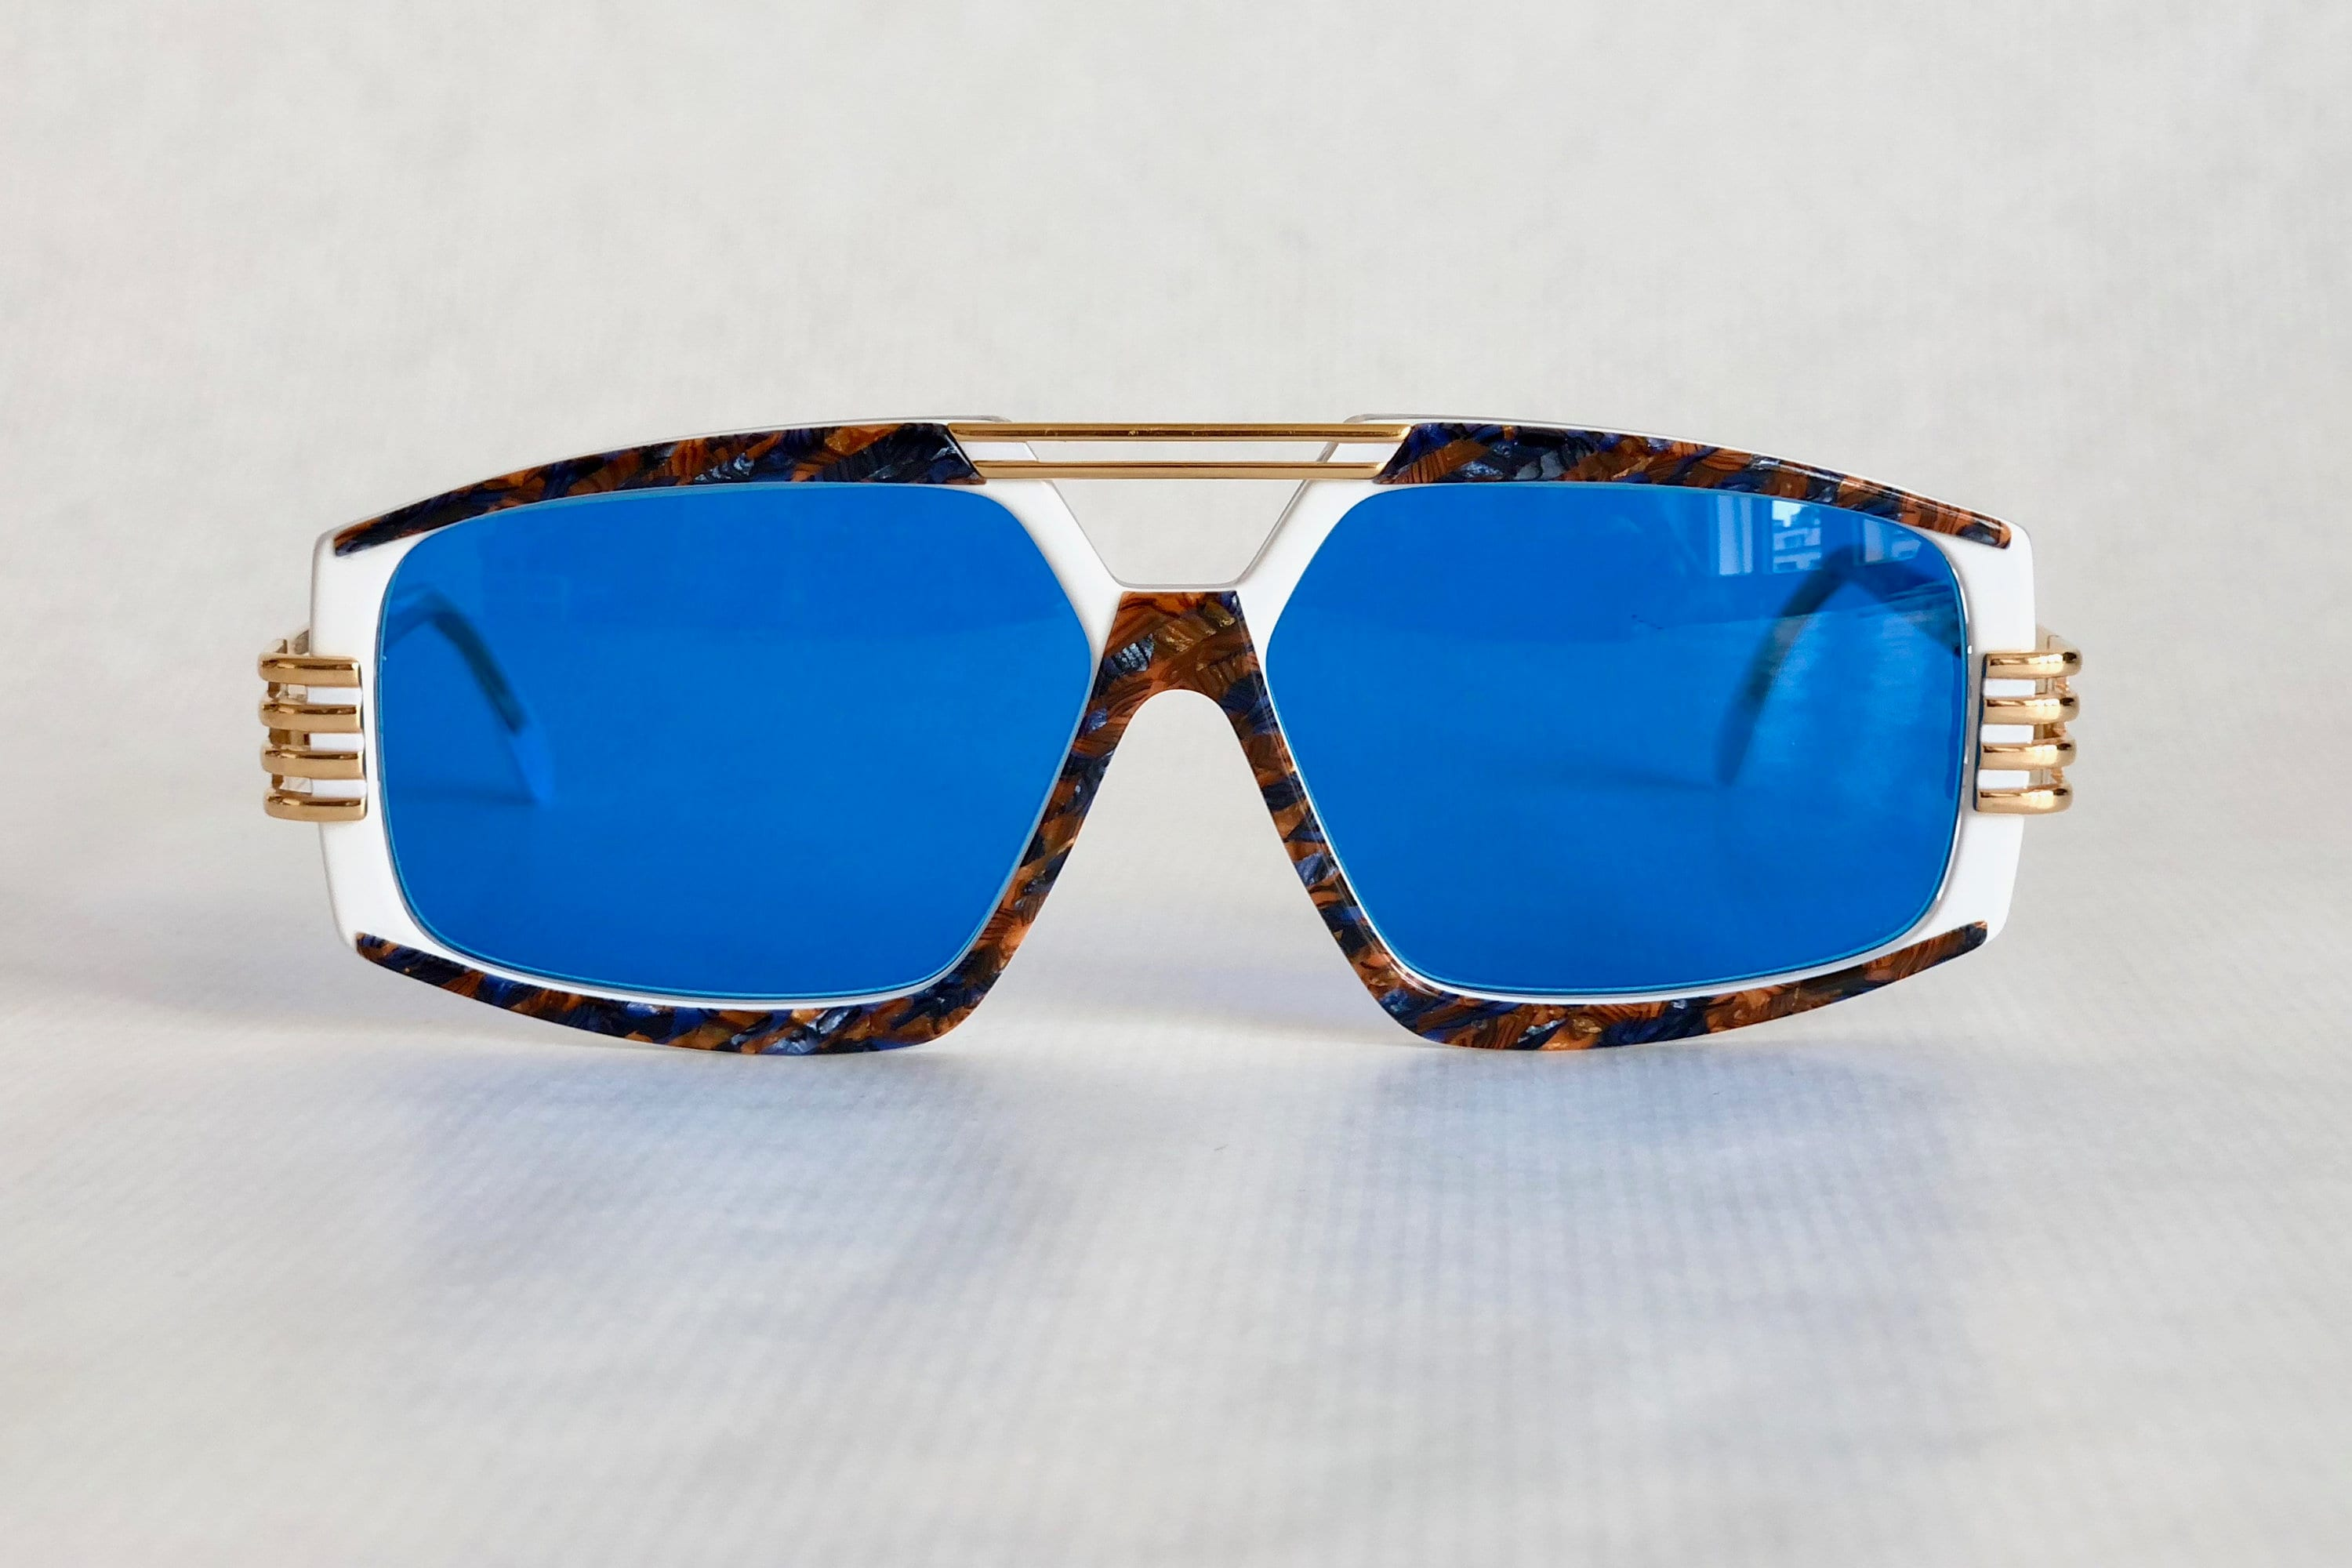 25869f2754 Cazal 325 Col 653 Vintage Sunglasses Made in West Germany New Old Stock.  gallery photo ...